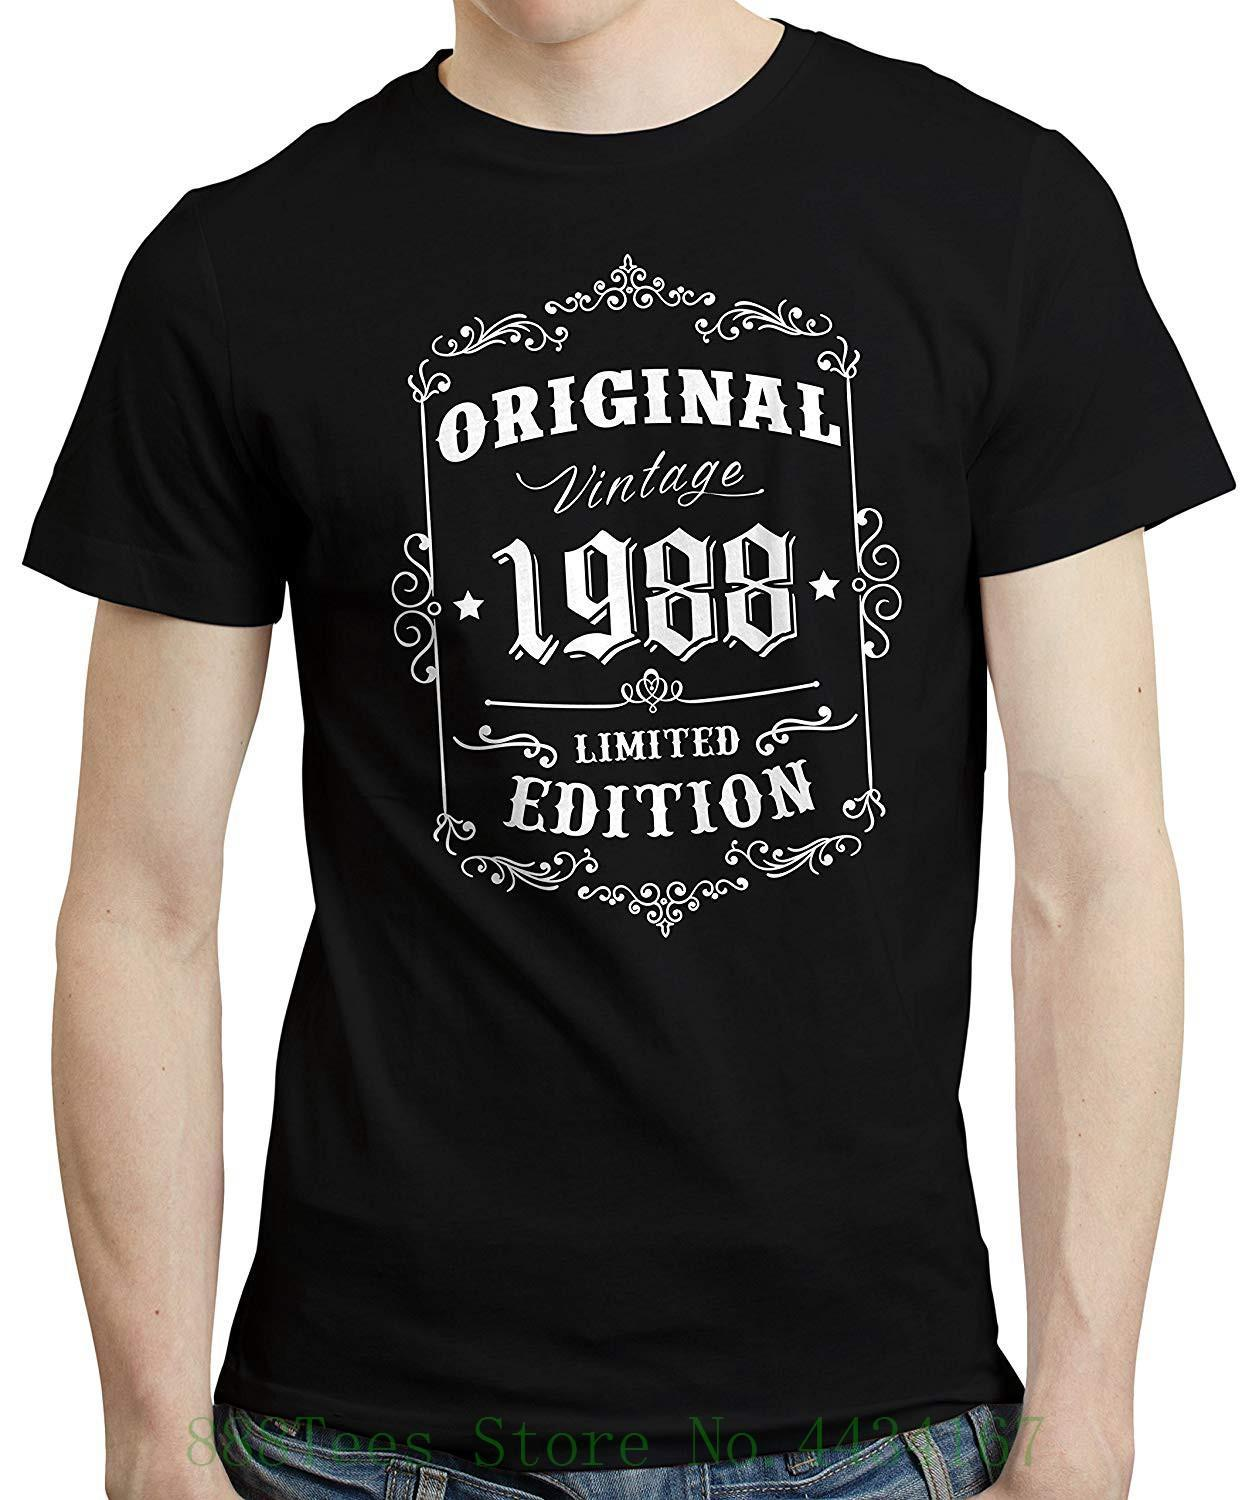 4695bd569cf Men 30th Birthday Born In 1988 Retro Style T Shirt New Short Sleeve Round  Collar Mens T Shirts Fashion 2018 Good T Shirt Design Latest T Shirt Design  From ...